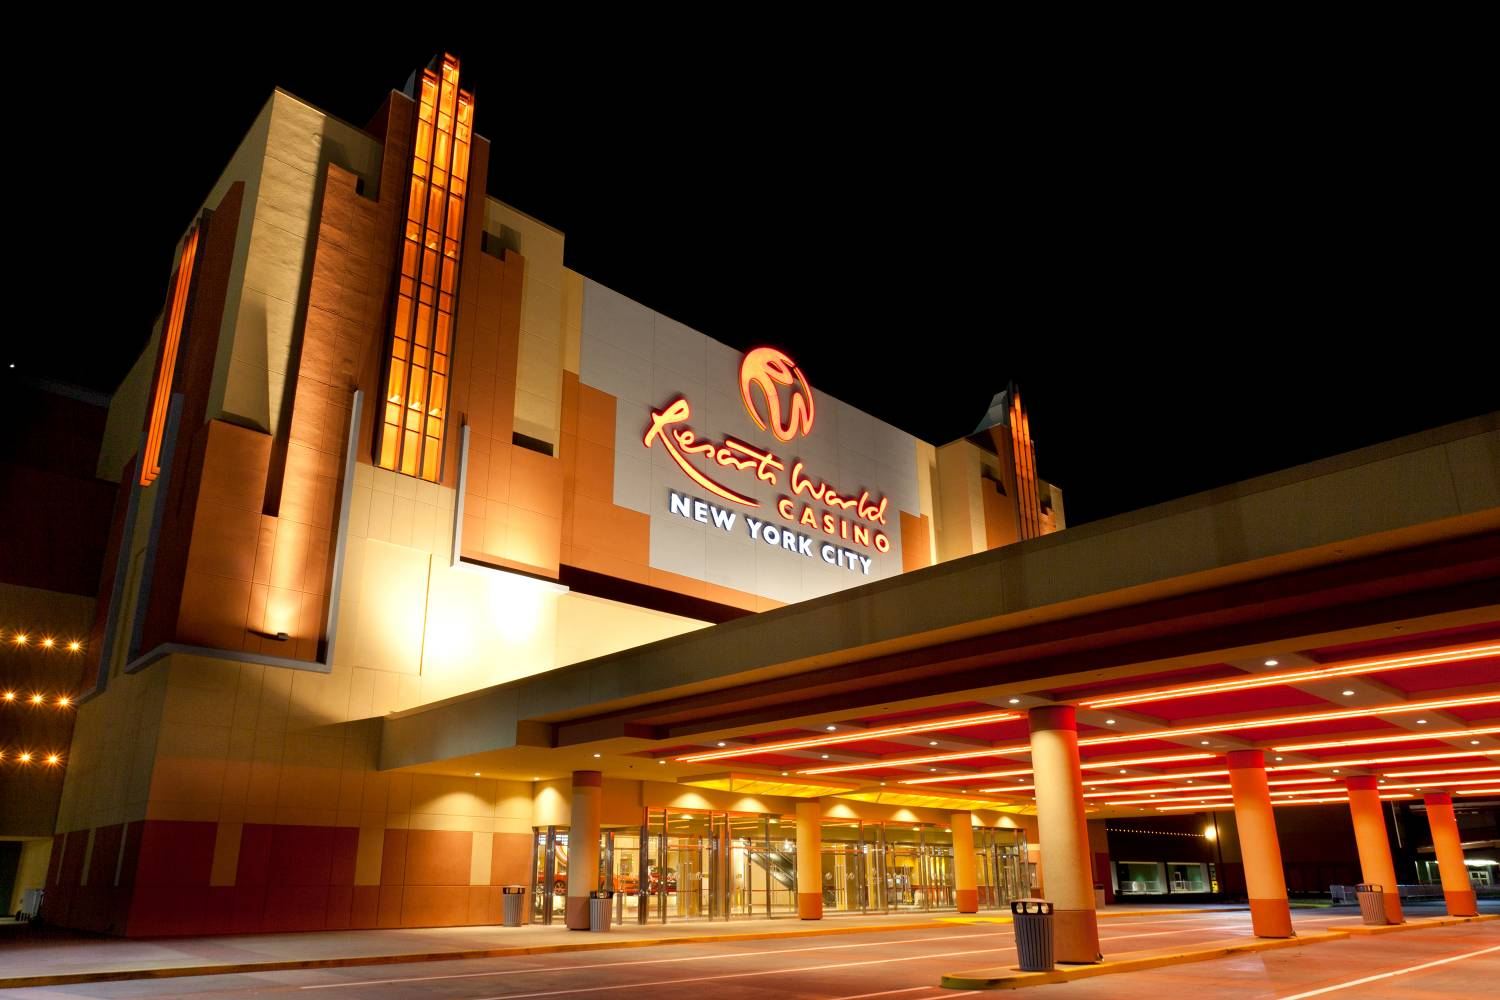 Resorts World Casino NY Incorporates IGT and ETG footprint With RNG Baccarat